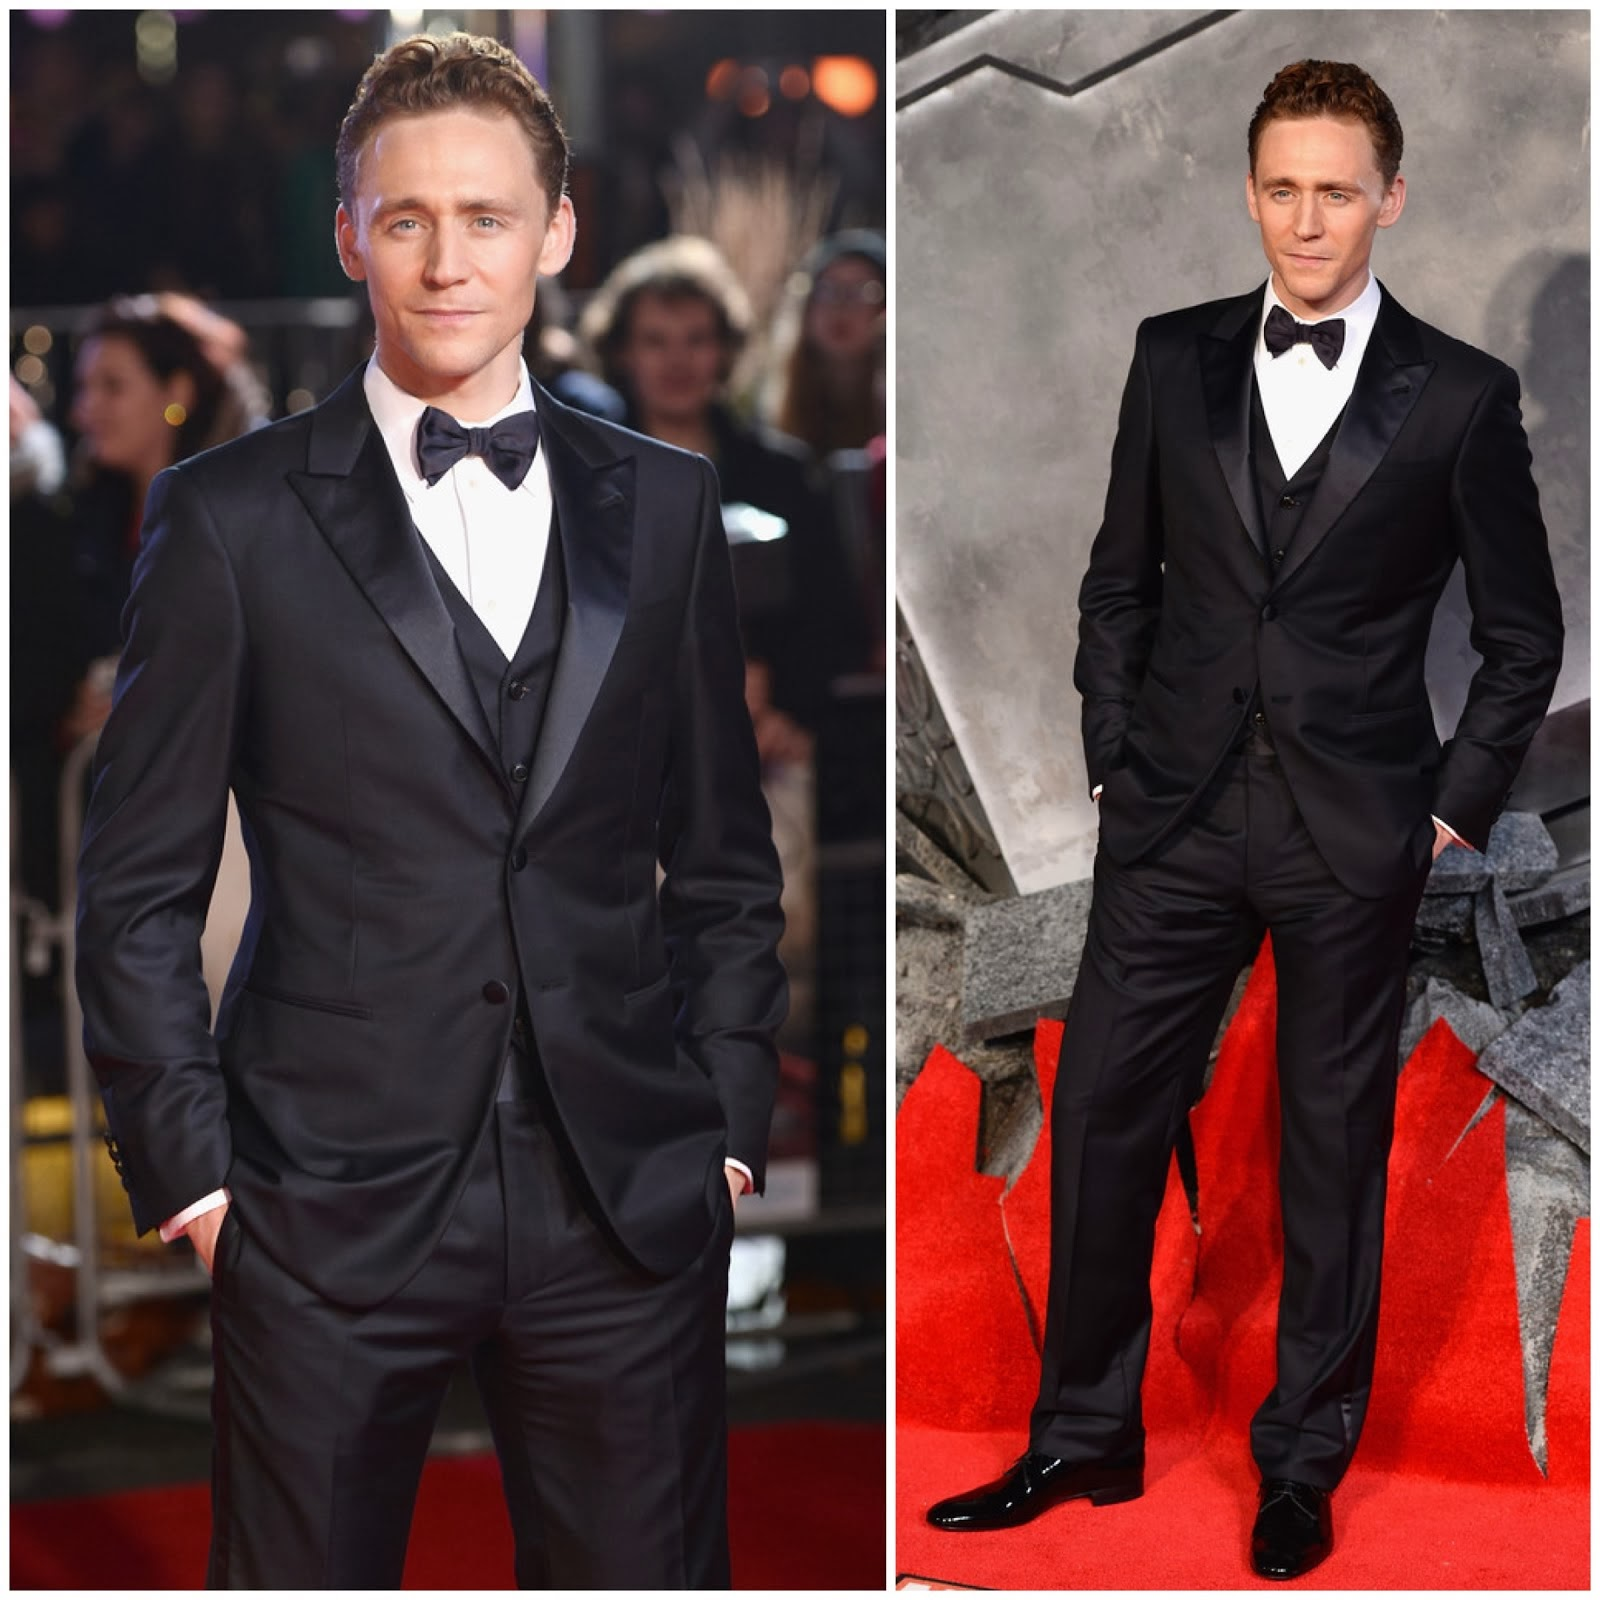 00O00 Menswear Blog: Tom Hiddleston in Giorgio Armani - 'Thor: The Dark World' premiere, London